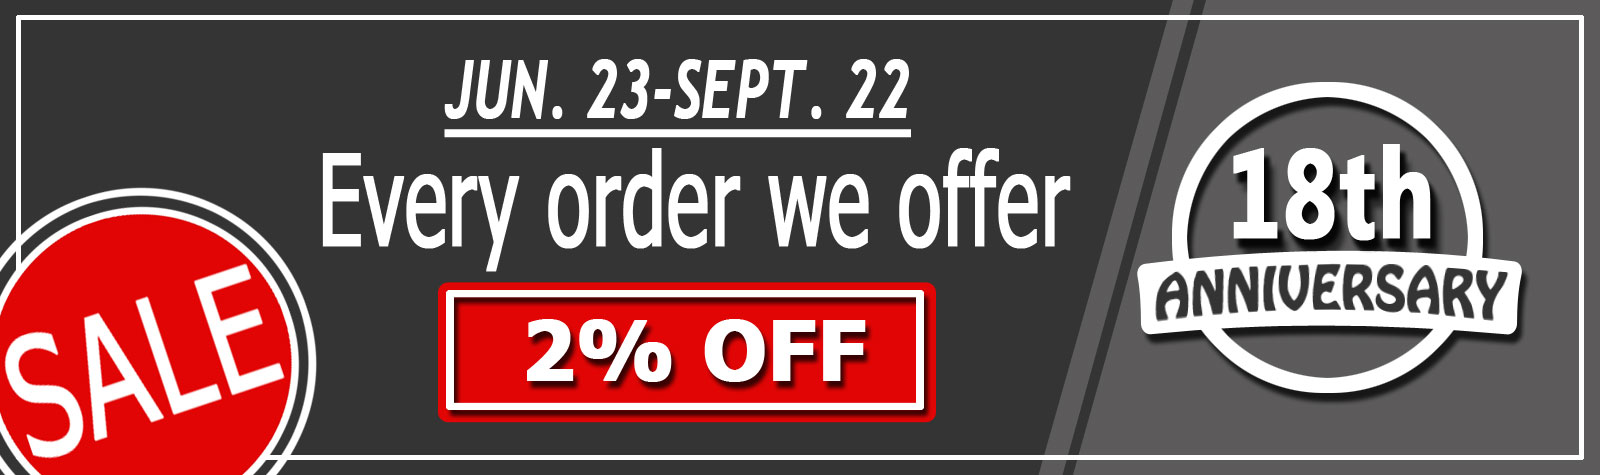 SALE!!! 2% OFF FROM JUN. 23 - SEPT. 22 !!!!